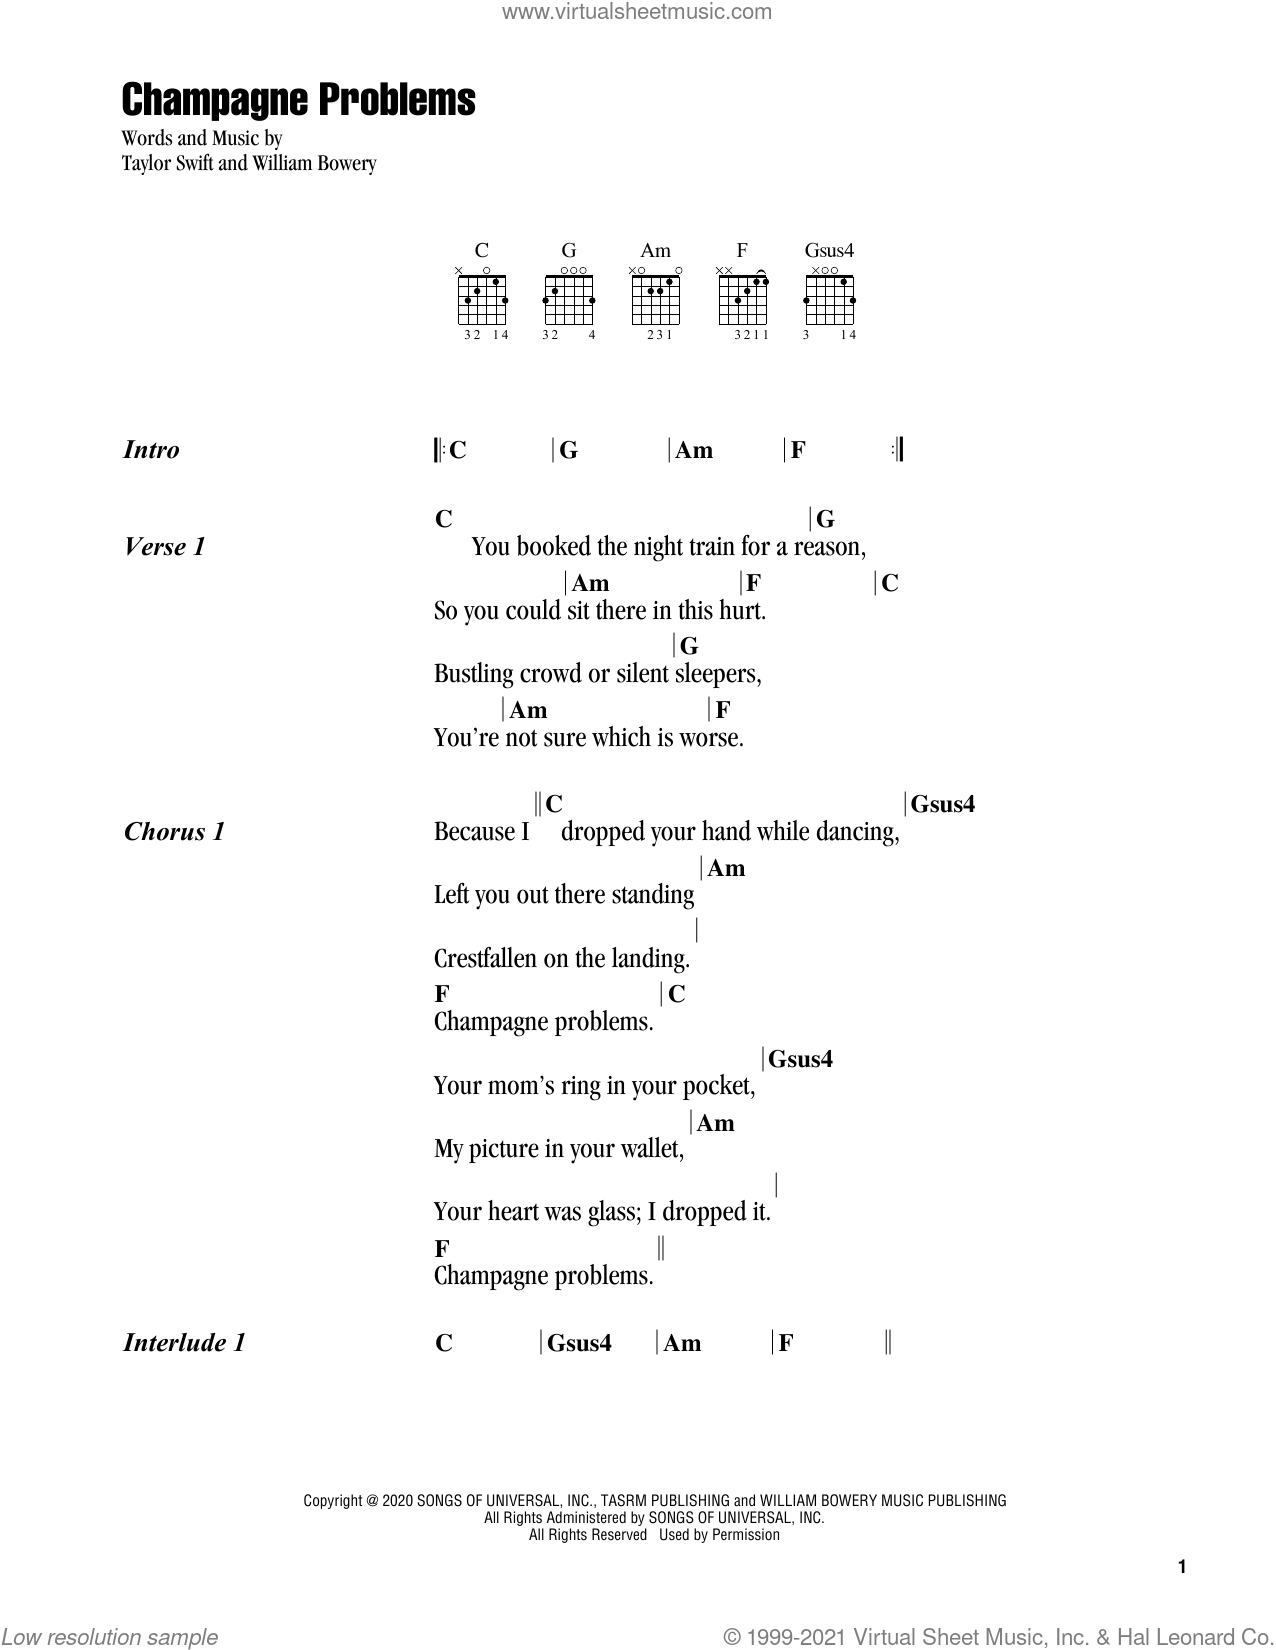 champagne problems sheet music for guitar (chords) by Taylor Swift and William Bowery, intermediate skill level